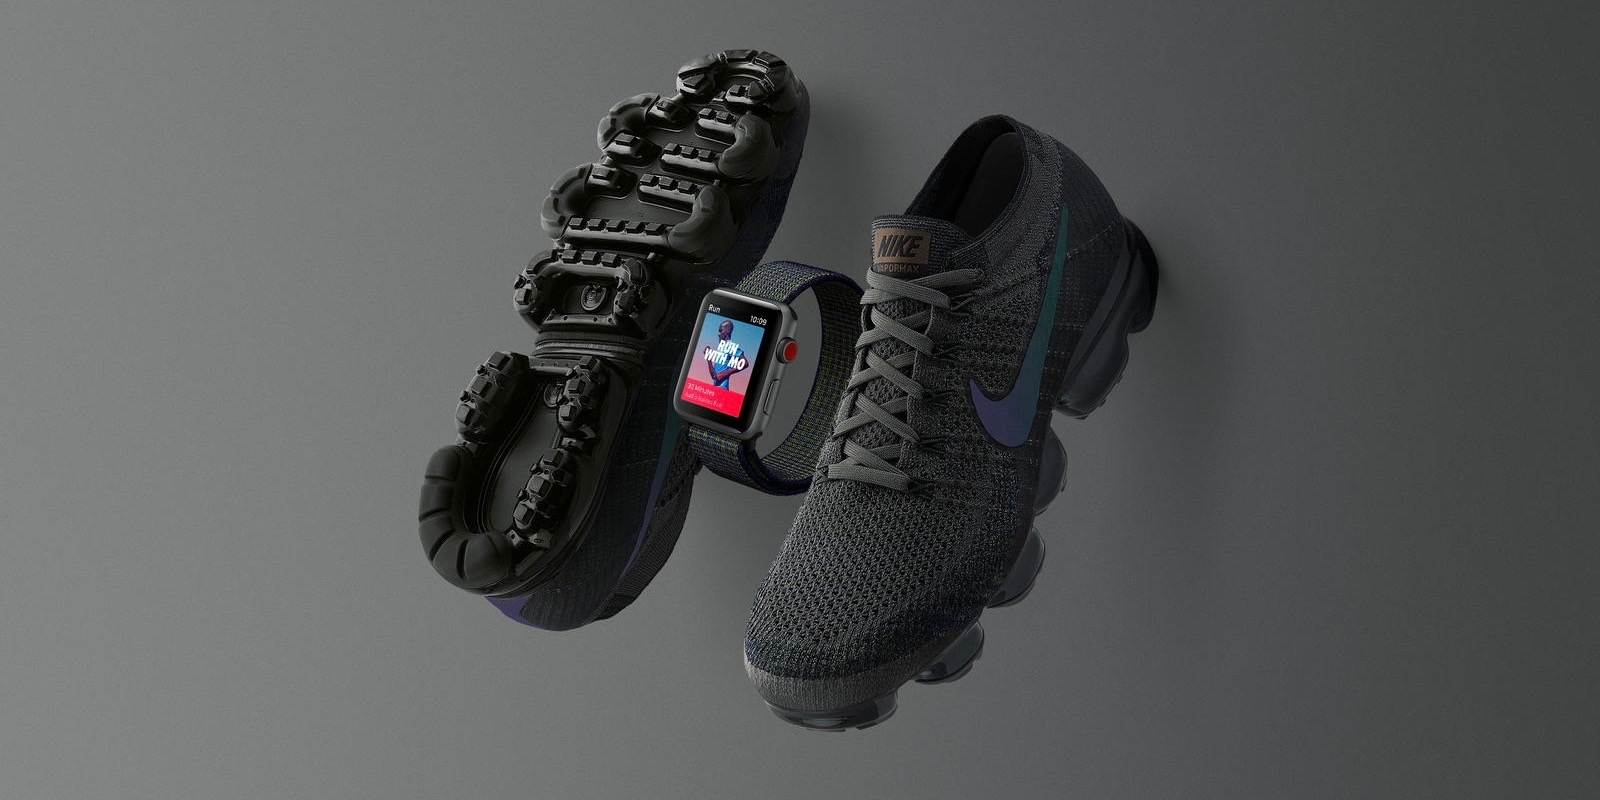 e46510b8110 Limited edition Midnight Fog Nike Apple Watch launching tomorrow ahead of  matching Air Vapormax shoes